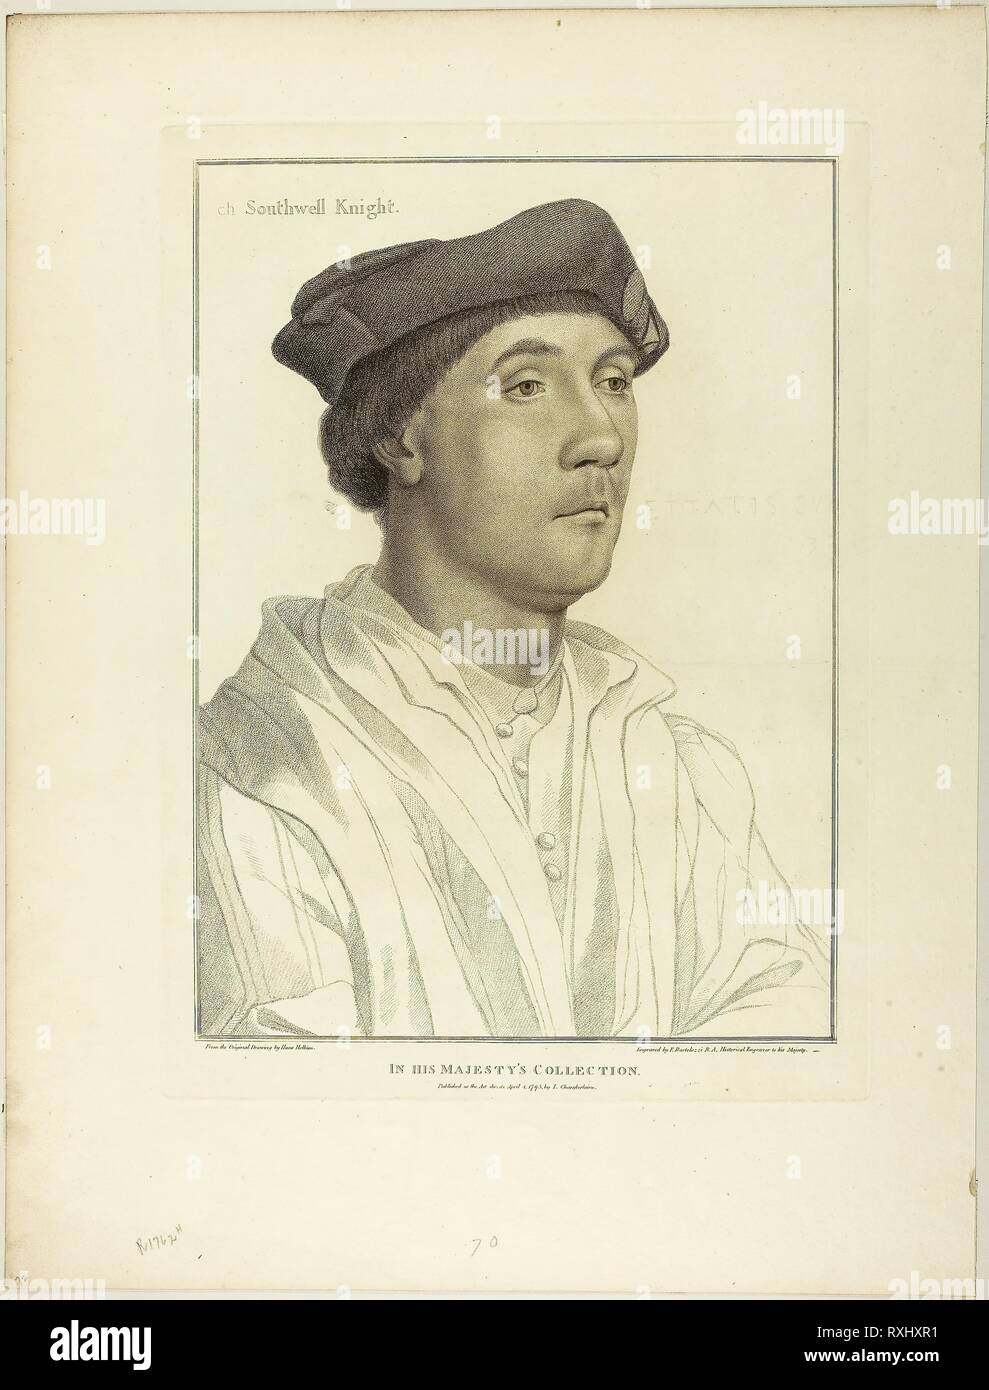 Sir Richard Southwell. Francesco Bartolozzi (Italian, 1727-1815); after Hans Holbein the younger (German, 1497-1543). Date: 1795. Dimensions: 372 x 270 mm (image); 410 x 299 mm (plate); 539 x 410 mm (sheet). Stipple engraving on cream wove paper. Origin: Italy. Museum: The Chicago Art Institute. - Stock Image